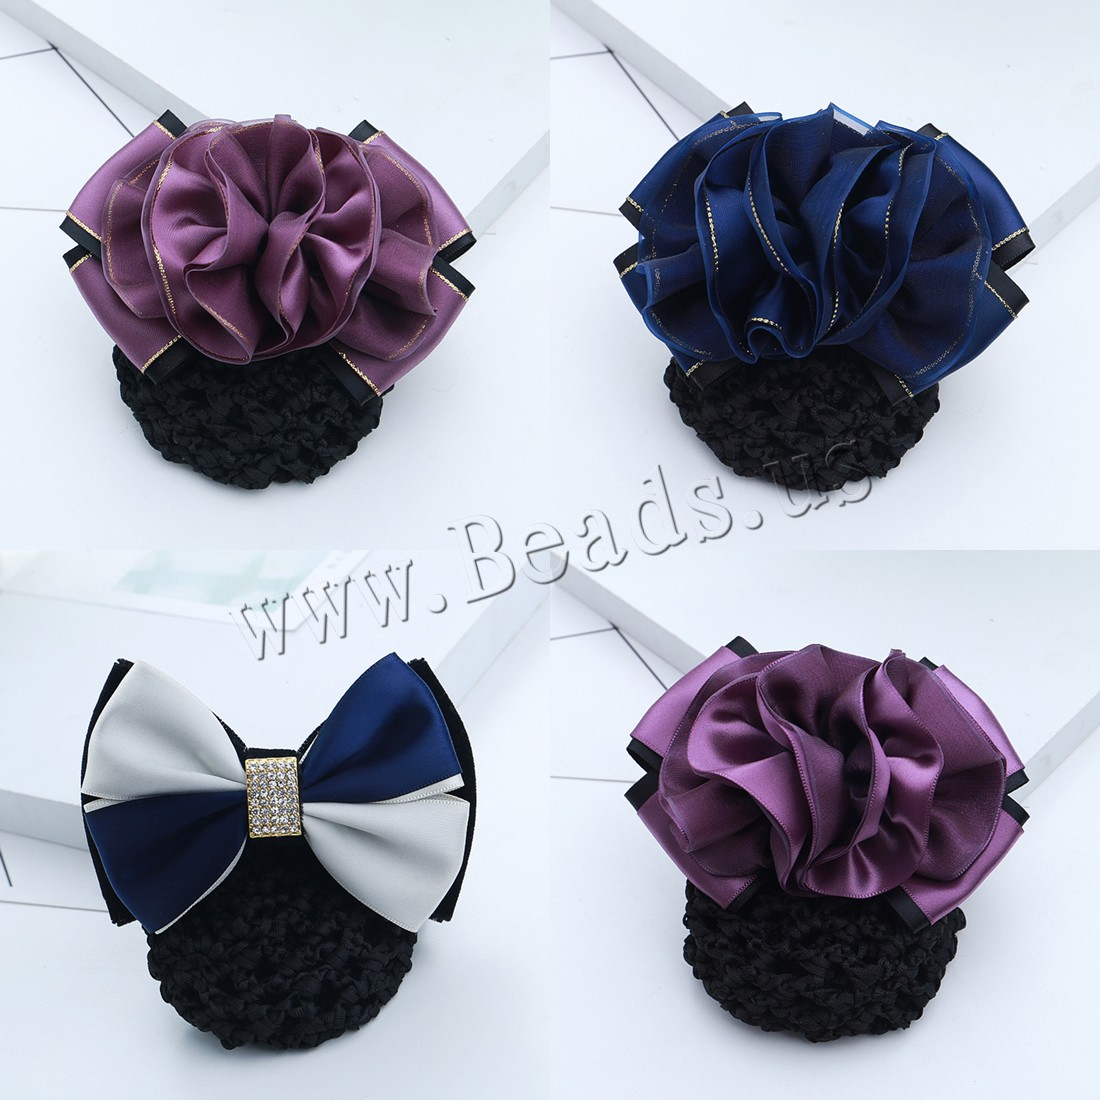 Buy Mixed Hair Accessories Polyester Lace & Iron & Zinc Alloy plated different styles choice & iron-on & woman & rhinestone nickel lead & cadmium free 115x70-85mm Sold PC